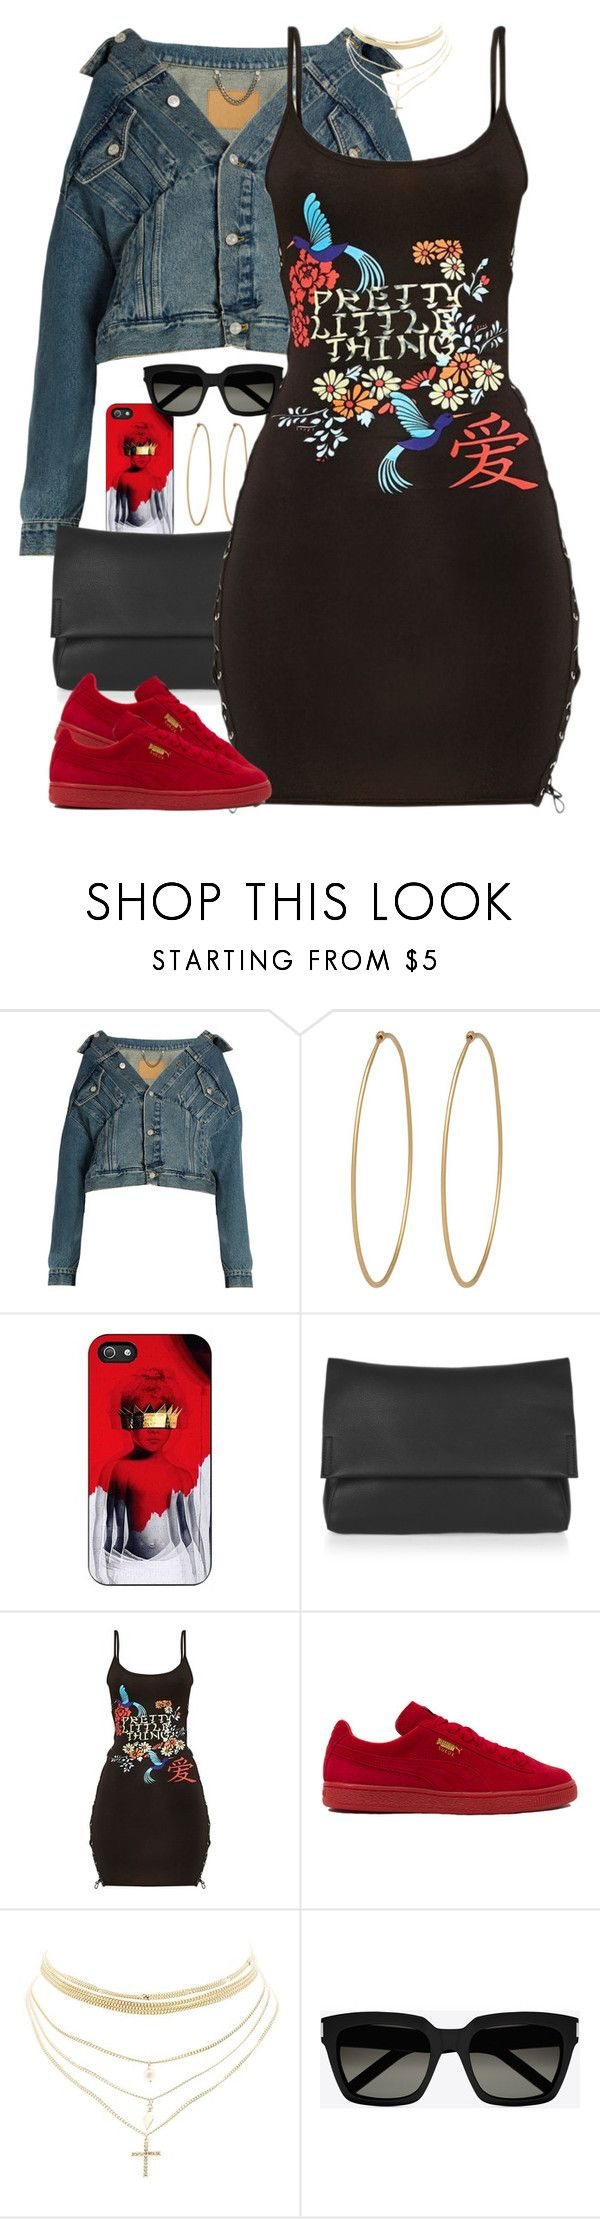 """""""Untitled #1628"""" by power-beauty ❤ liked on Polyvore featuring Balenciaga, Social Anarchy, Topshop, Pretty Little Thing, Puma, Charlotte Russe and Yves Saint Laurent"""